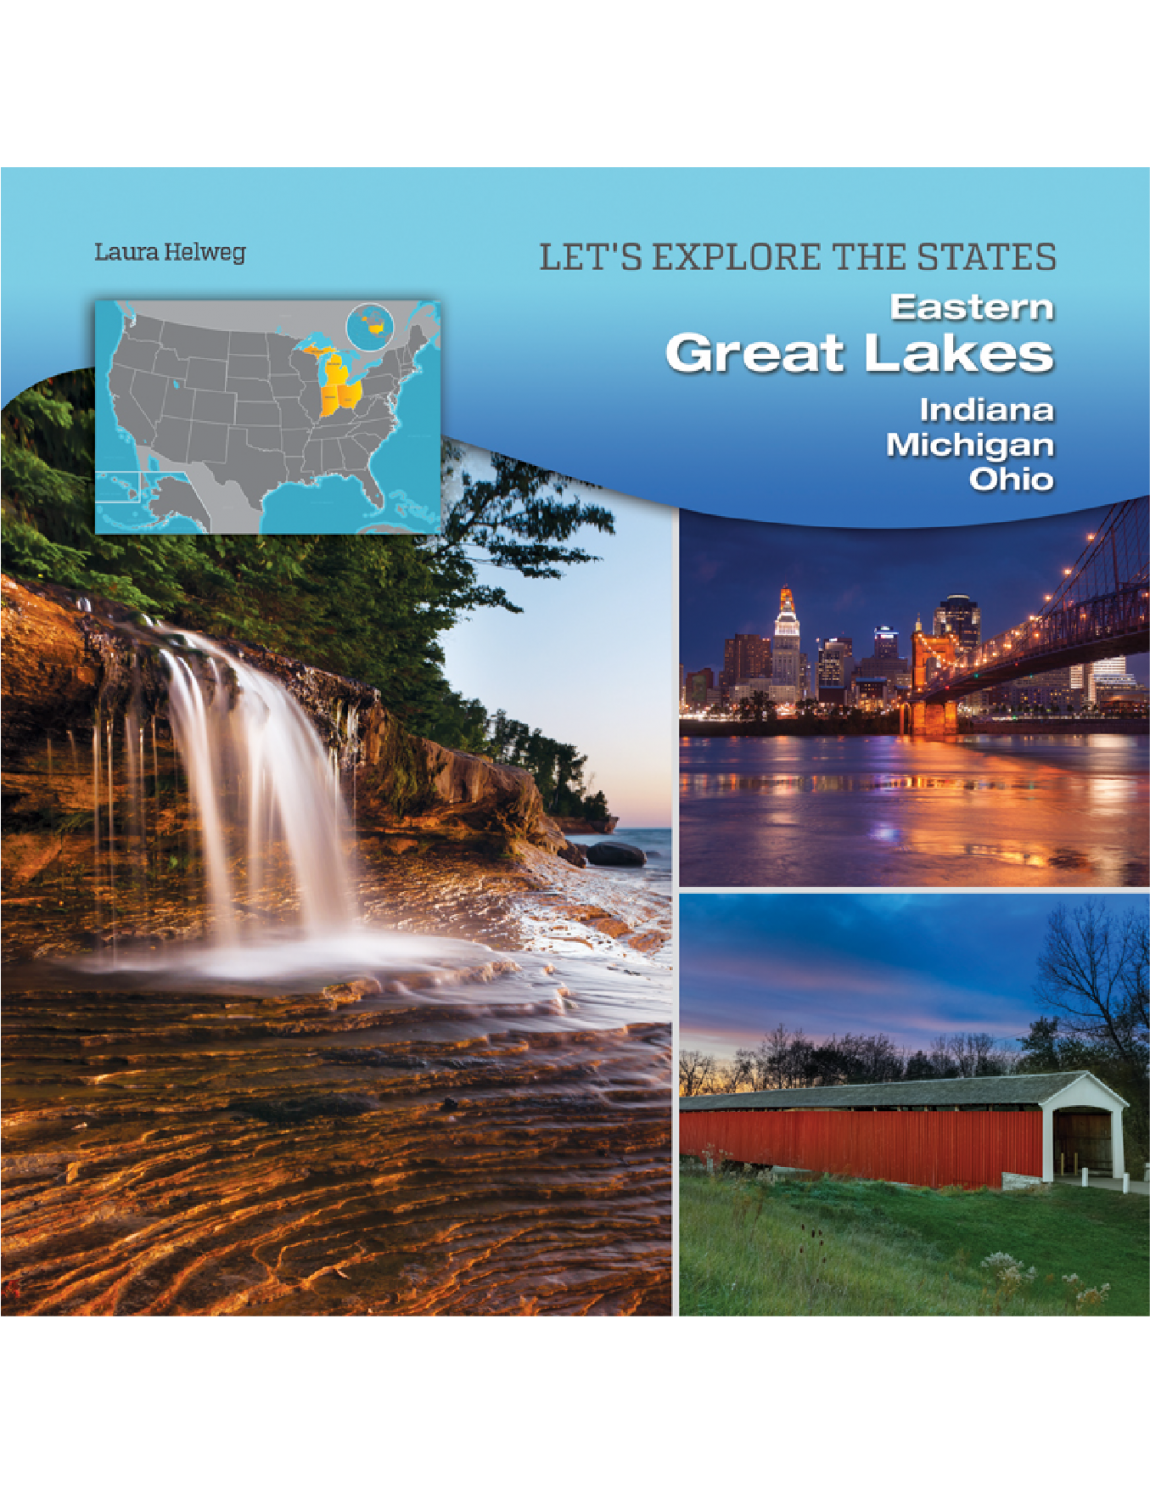 eastern-great-lakes-01.png